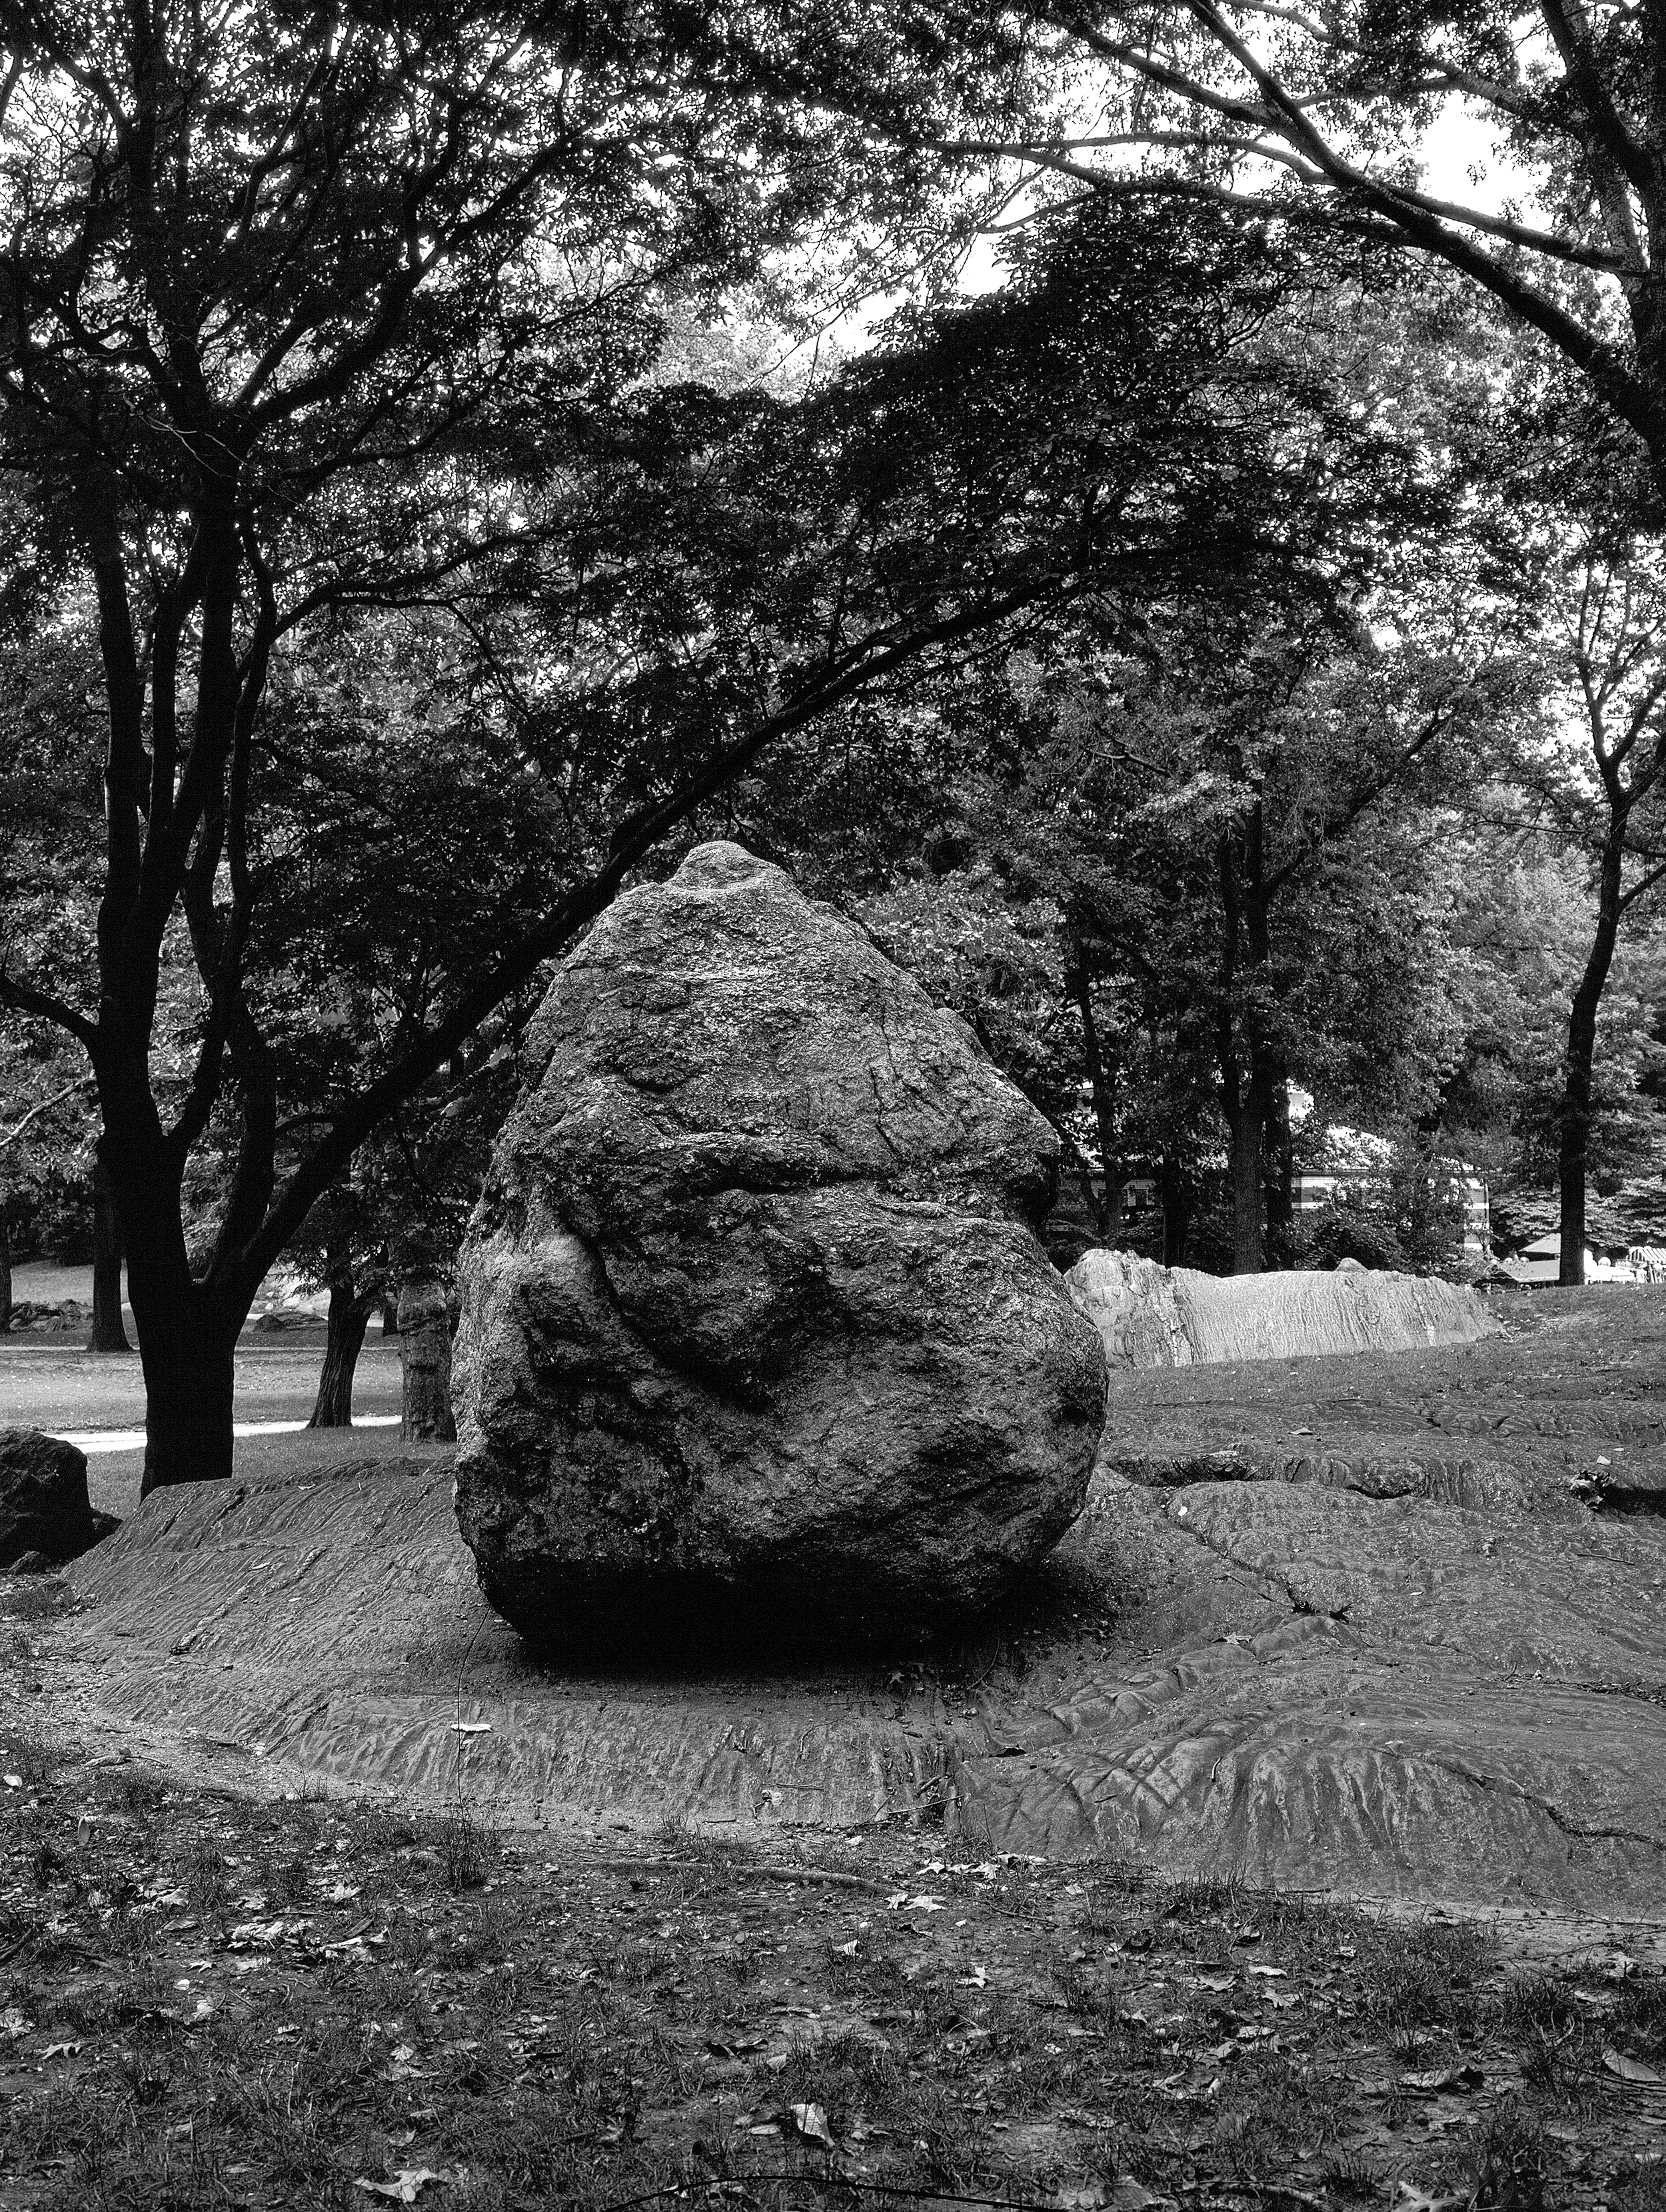 A rock at Central Park New York 2000.jpg